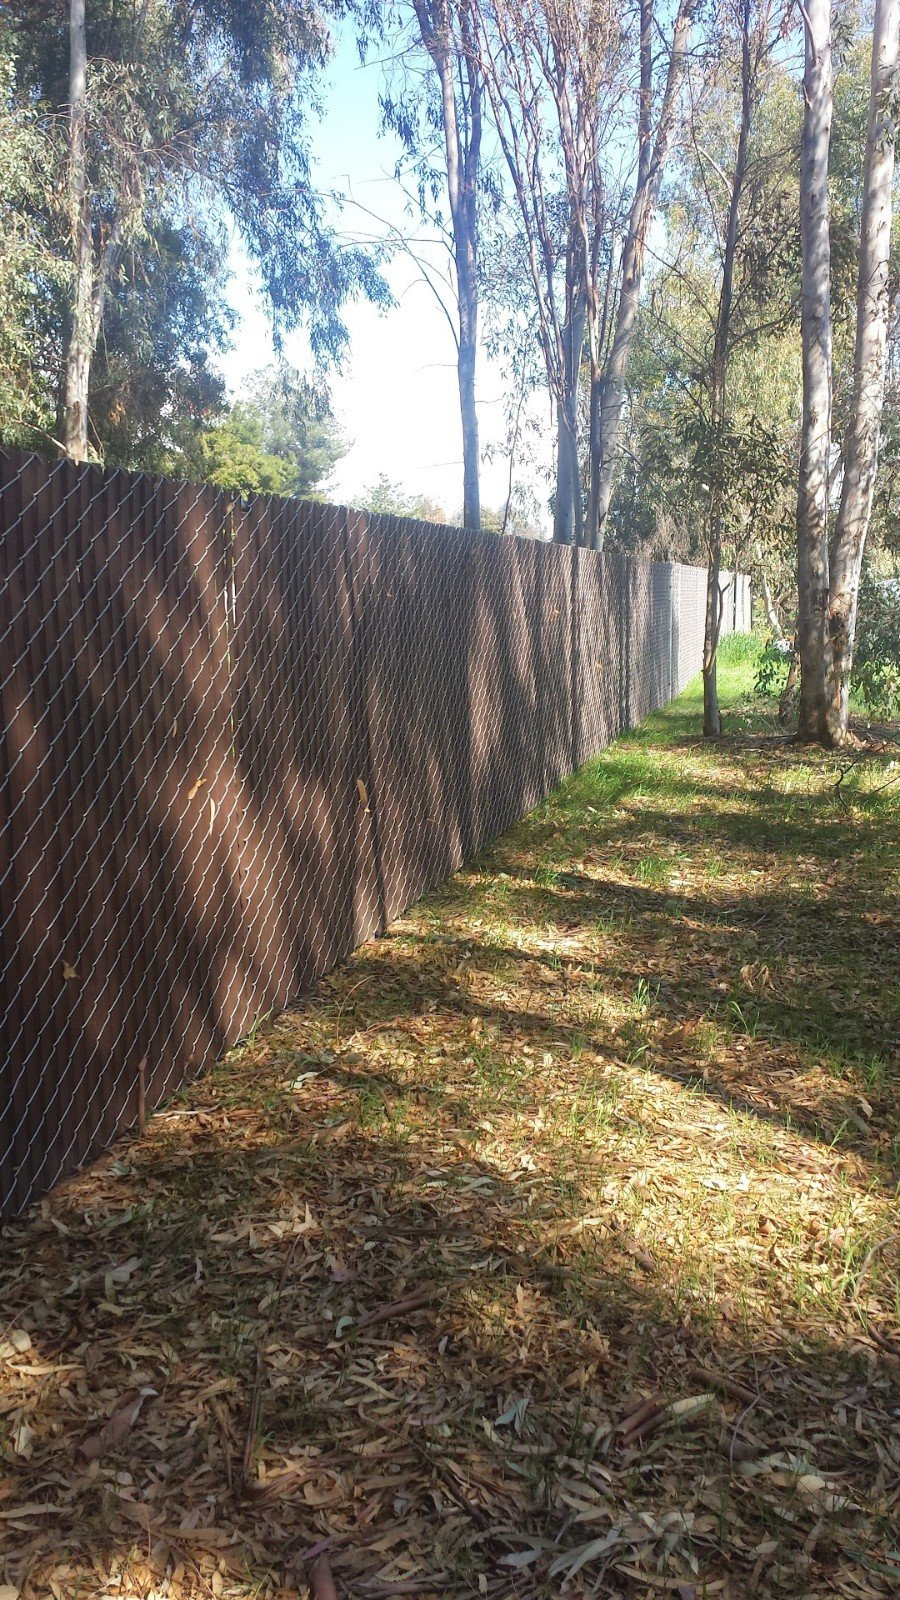 Wood and Metal Fencing